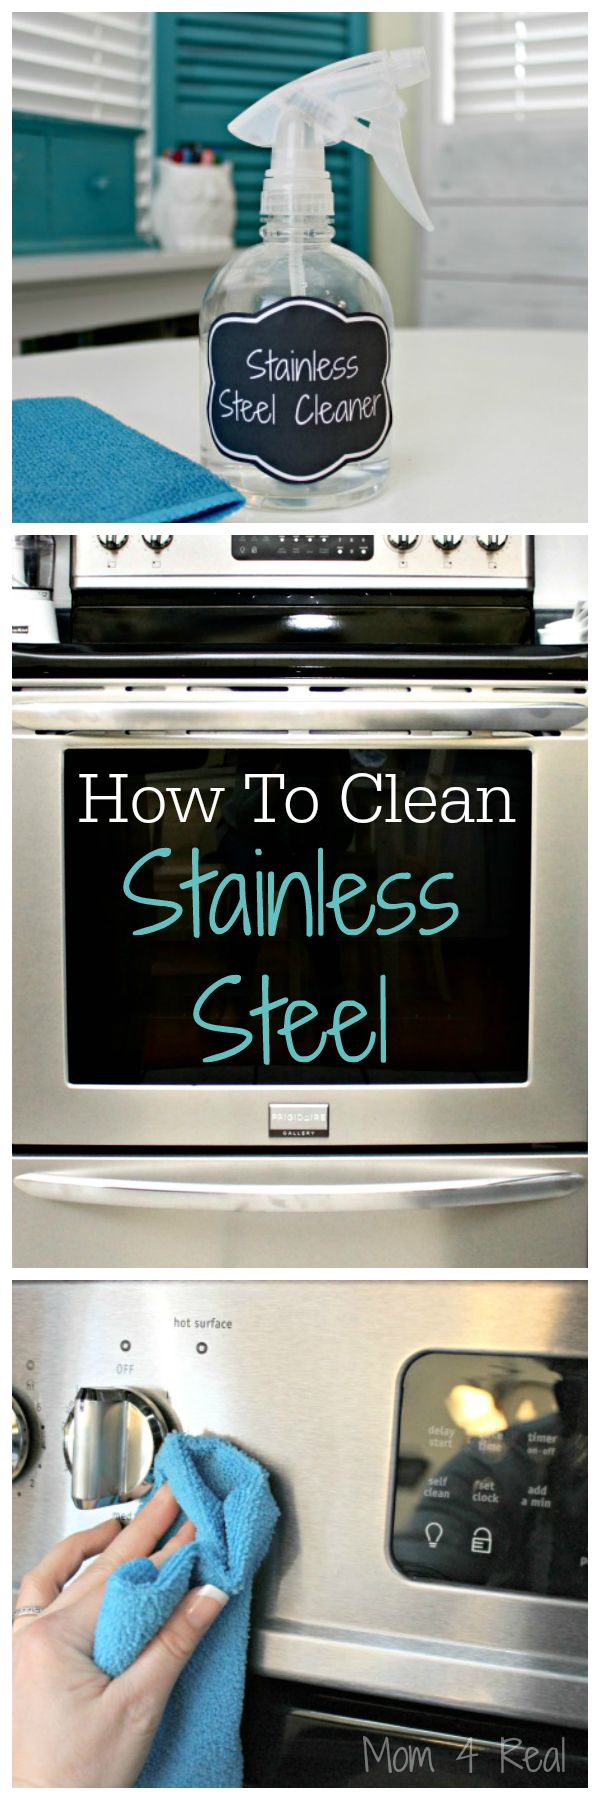 I've gotten tons of emails asking me how to clean stainless steel appliances, and until this past month, I couldn't answer because I didn't own any. Well, now I do, and I'm actually shocked at how easy it is to keep clean. You don't need anything fancy at all, and no chemicals whatsoever!